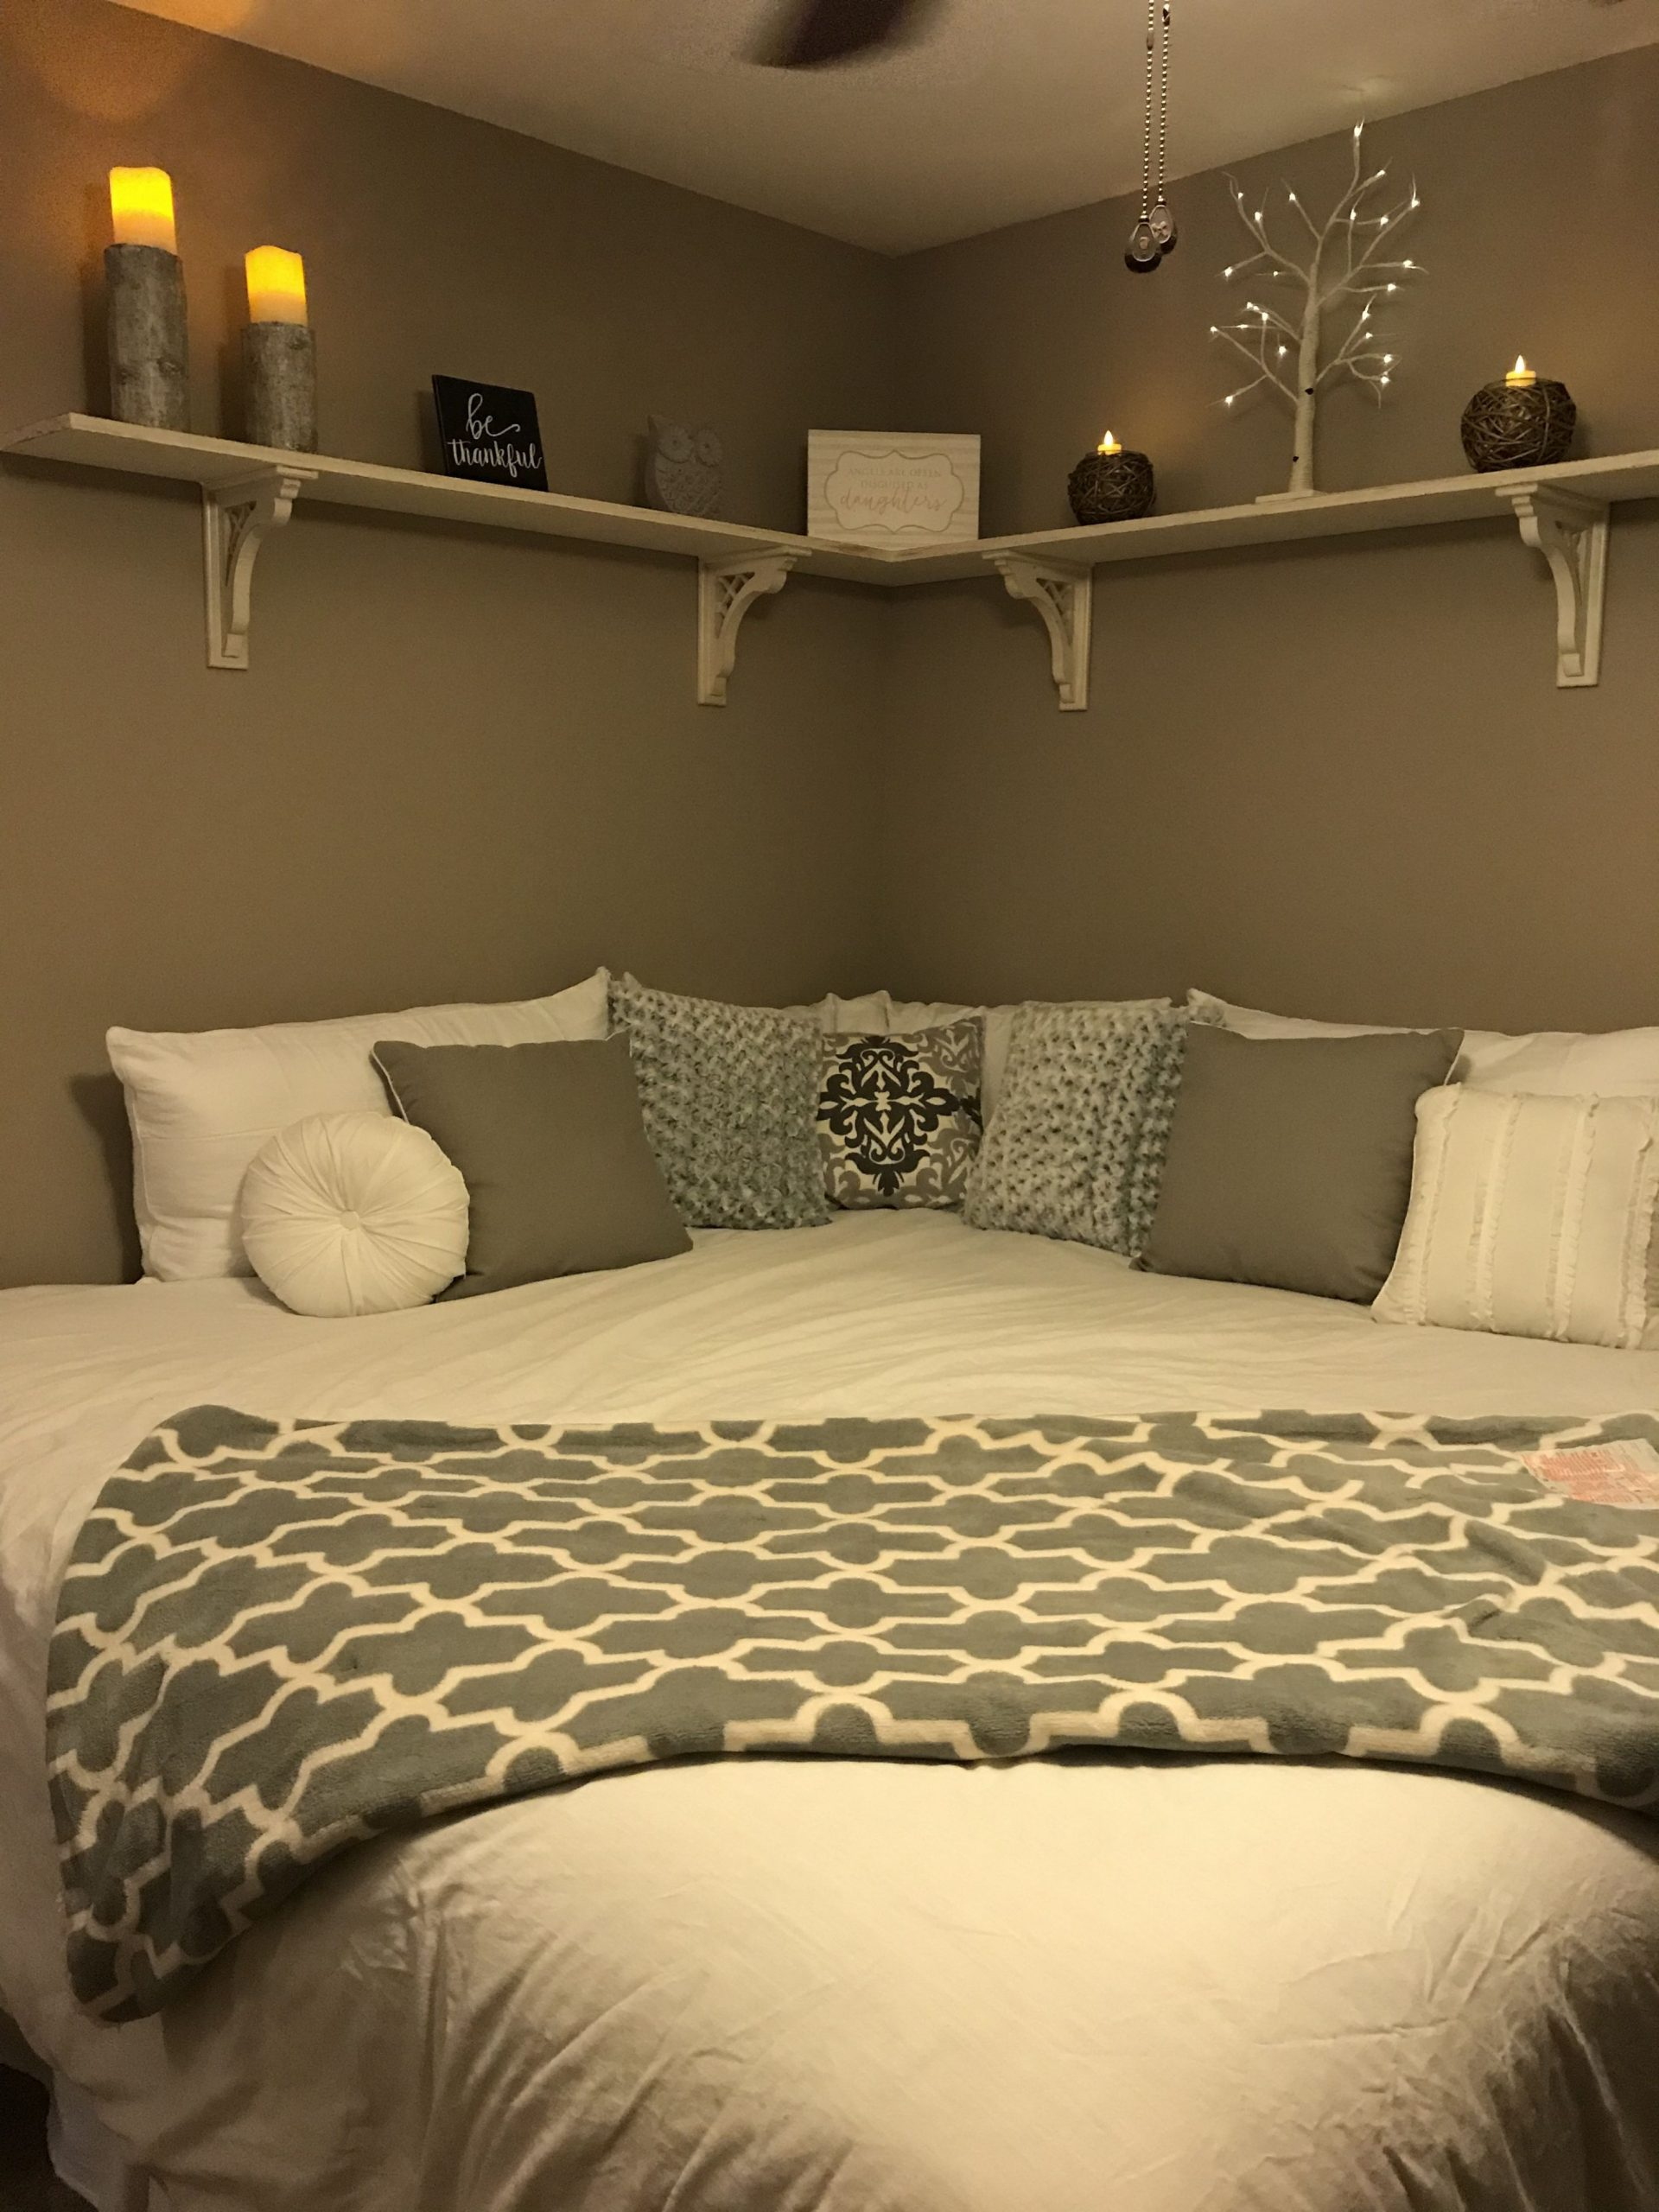 Moving bed to a corner and remove headboard and footboard  - Bedroom Ideas Without Headboard